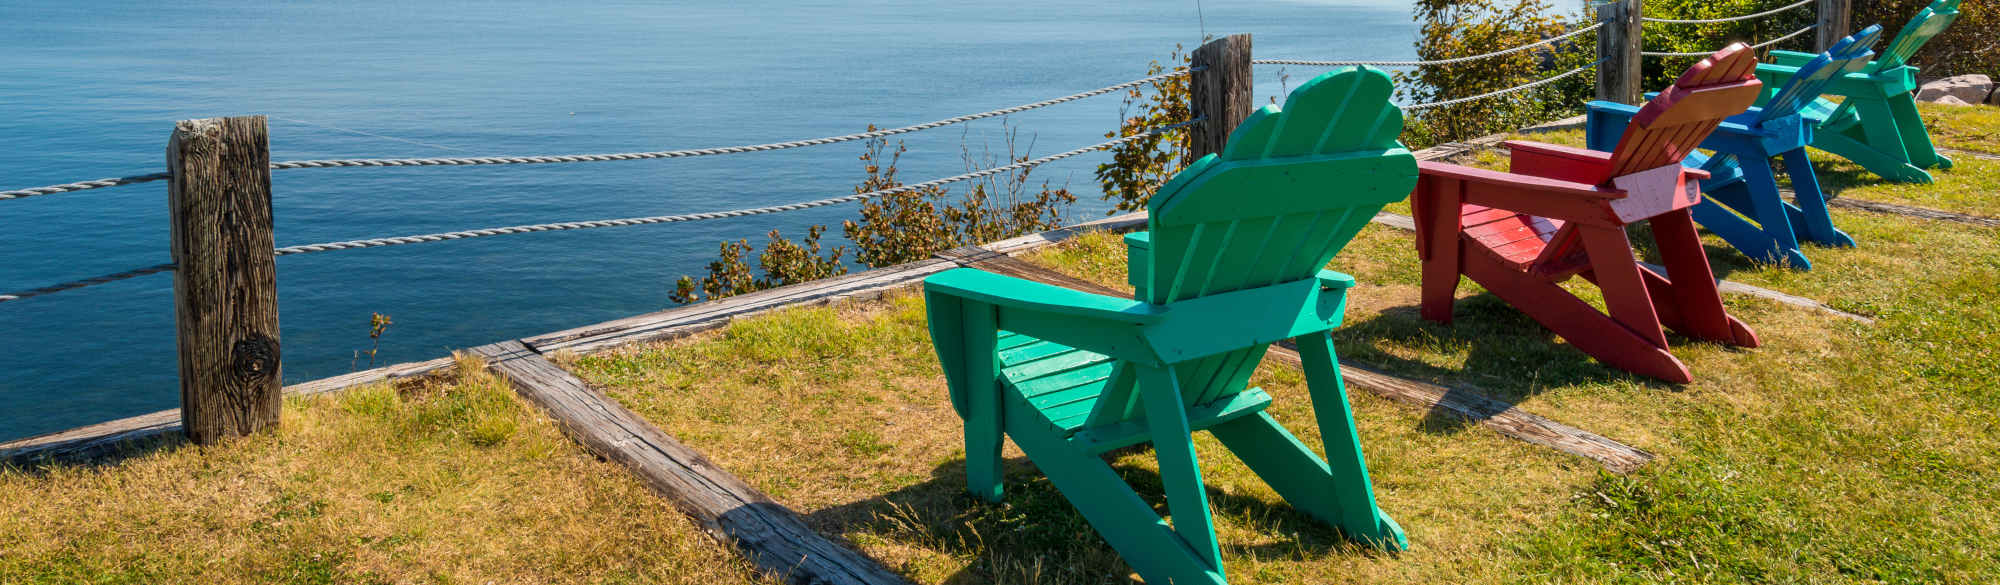 Colourful lawn chairs looking over water